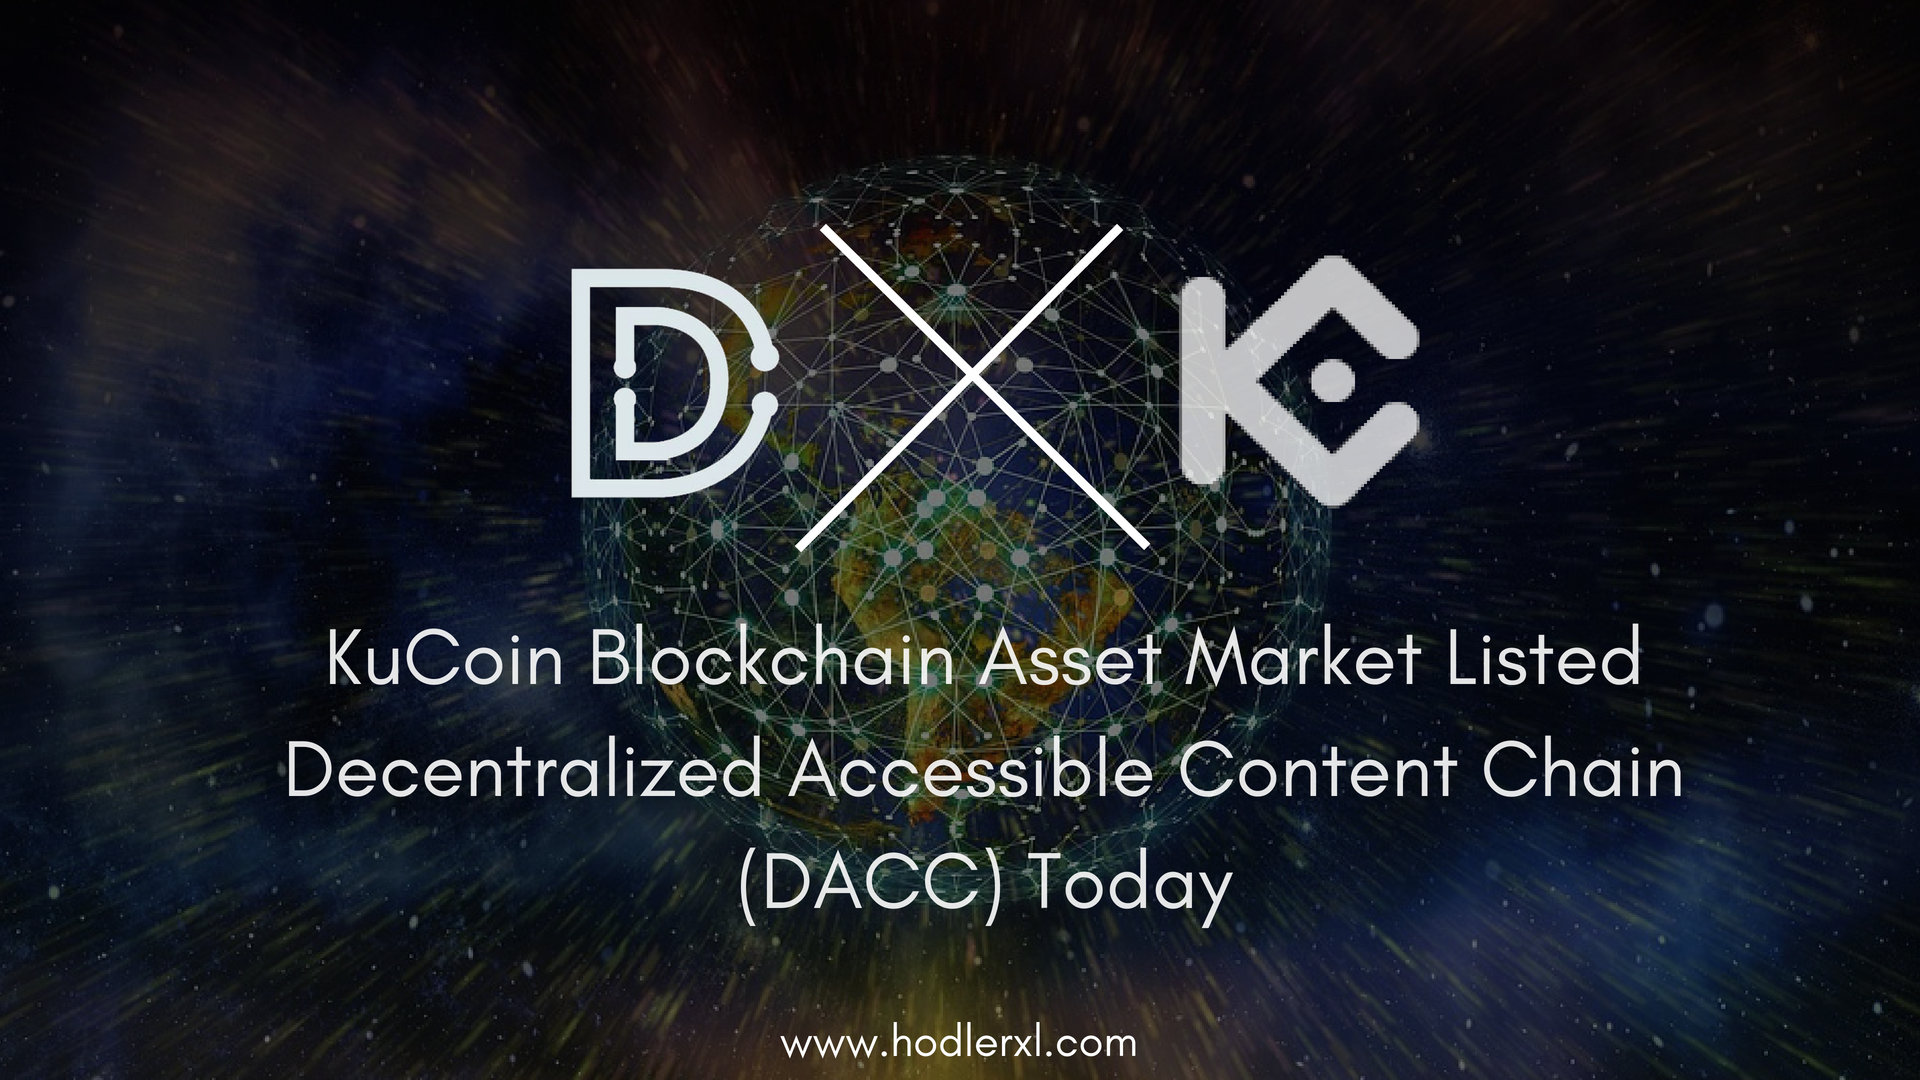 KuCoin Blockchain Asset Market Listed Decentralized Accessible Content Chain (DACC) Today